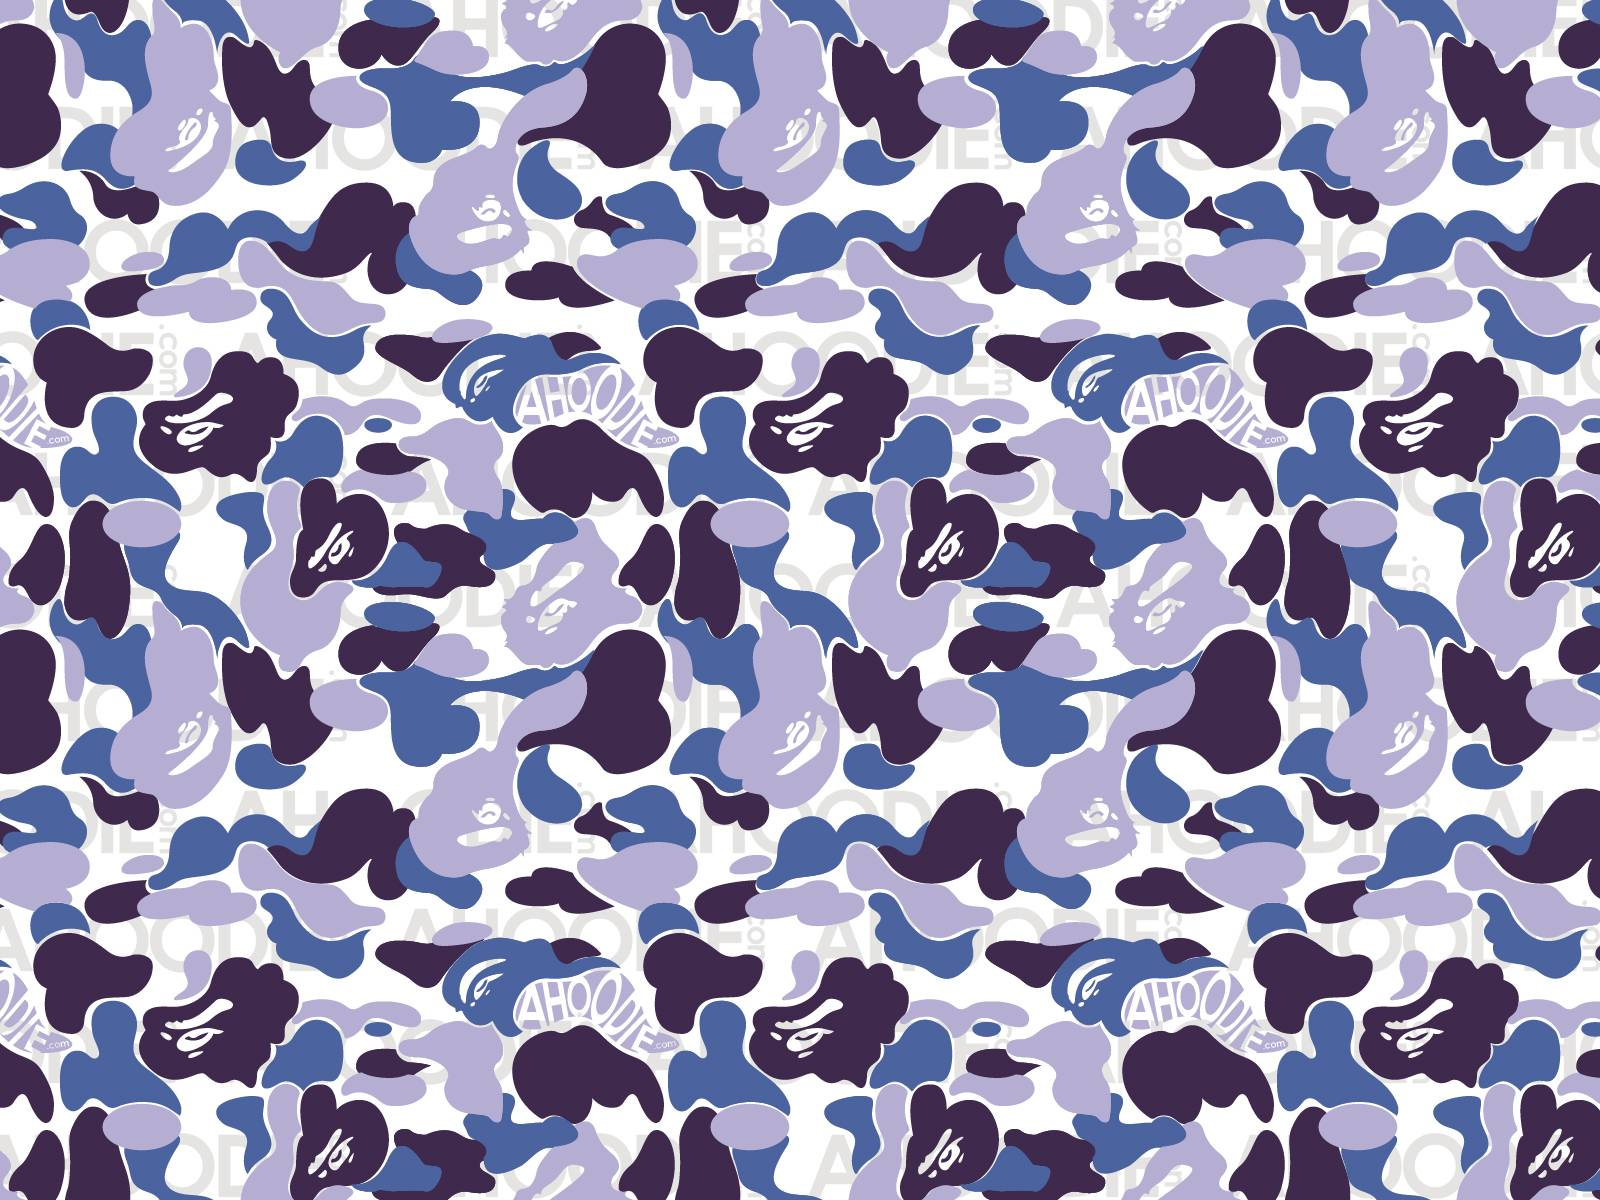 Bape iPhone Wallpaper - WallpaperSafari